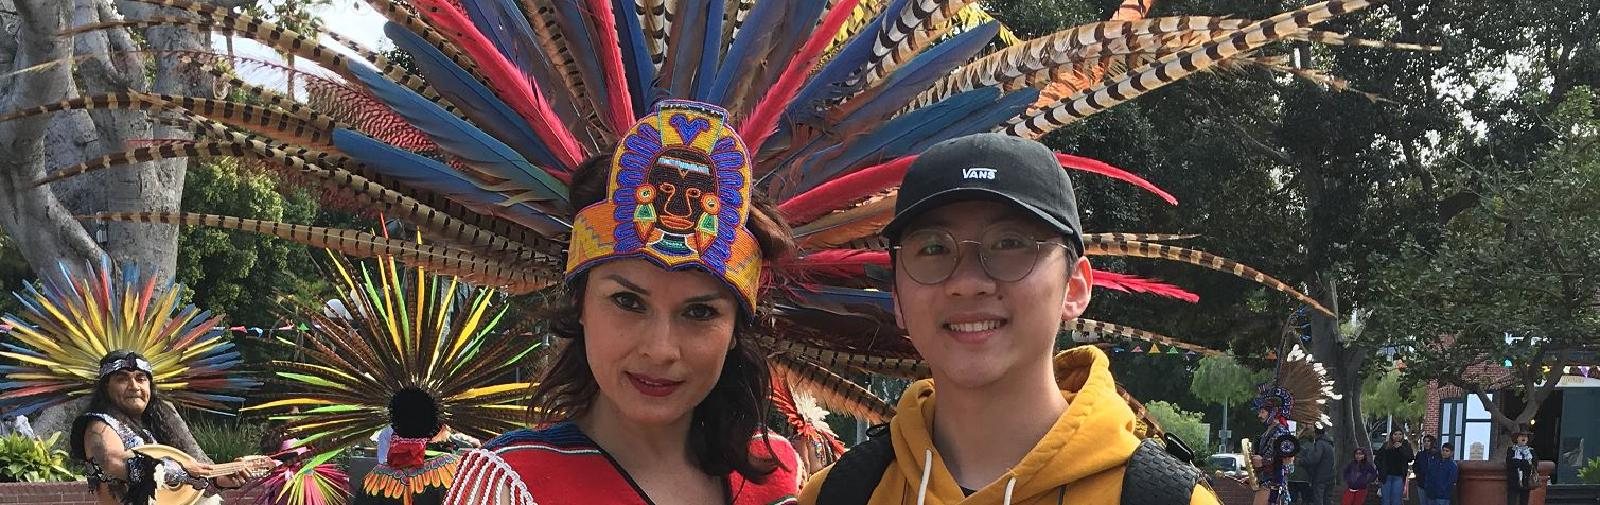 A woman with an elaborate costume with colorful feathers posing with a tour goer.